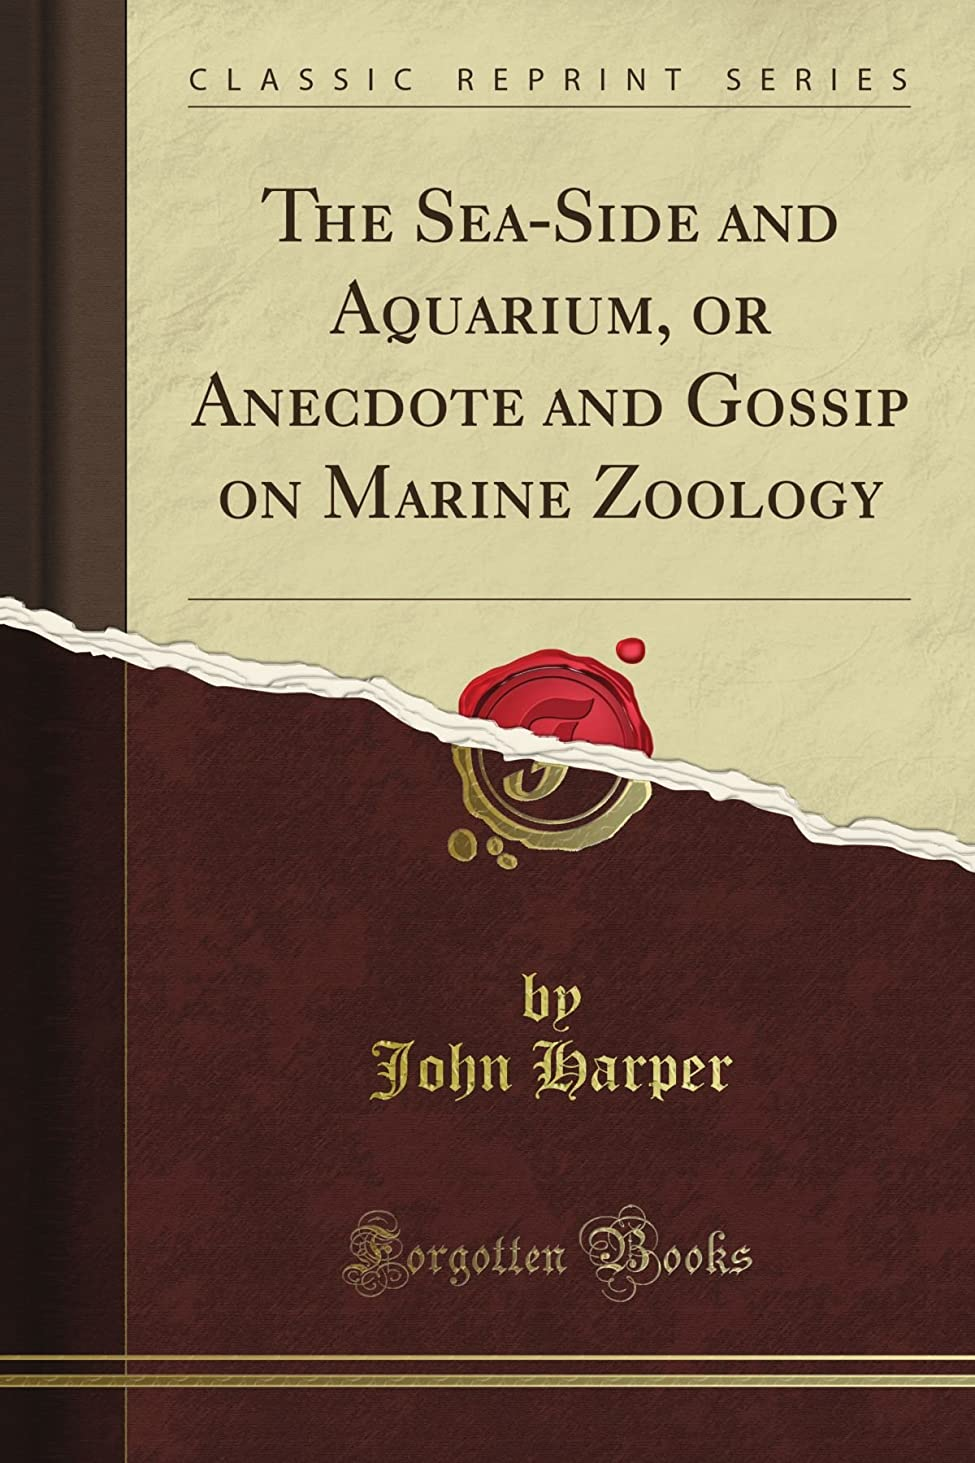 足音象ペインティングThe Sea-Side and Aquarium, or Anecdote and Gossip on Marine Zoology (Classic Reprint)